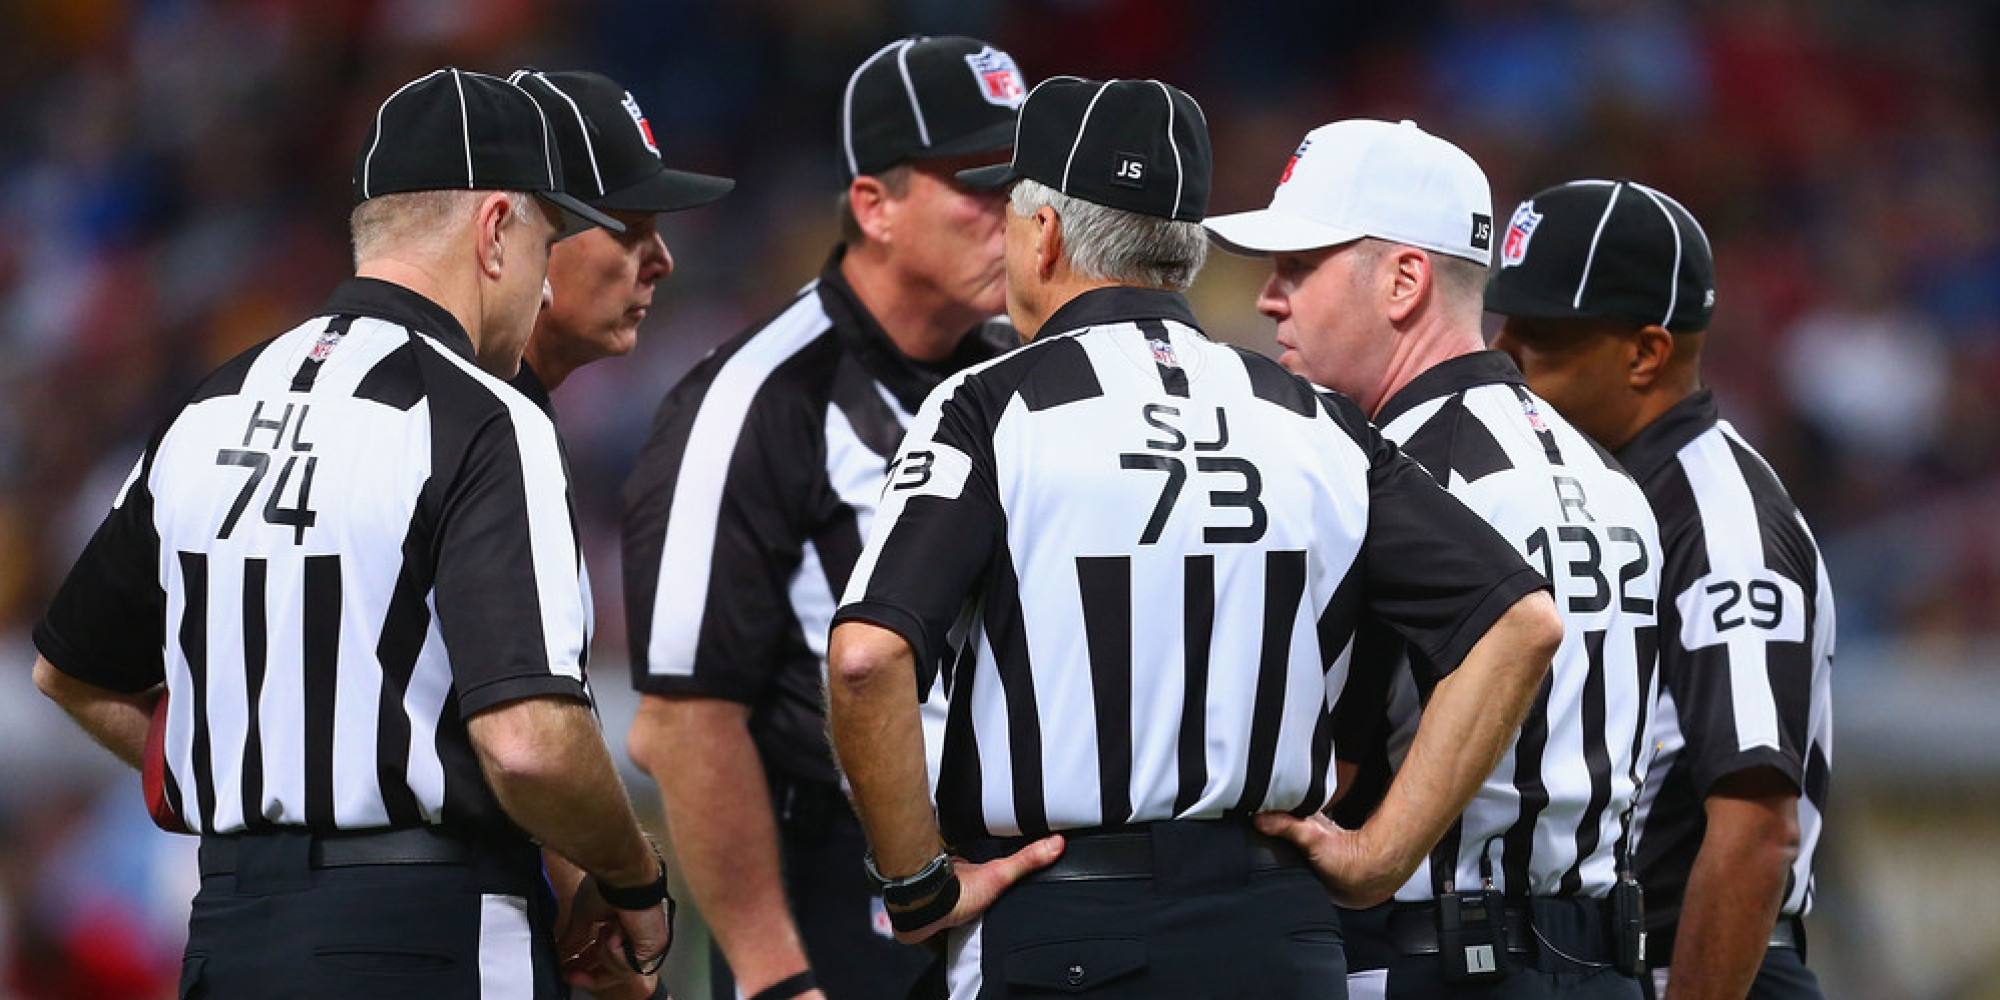 ST. LOUIS, MO - DECEMBER 22: Referee John Parry #132 holds a meeting with other officials during a game between the St. Louis Rams and the Tampa Bay Buccaneers at the Edward Jones Dome on December 22, 2013 in St. Louis, Missouri.  The Rams beat the Buccaneers 23-13.  (Photo by Dilip Vishwanat/Getty Images)